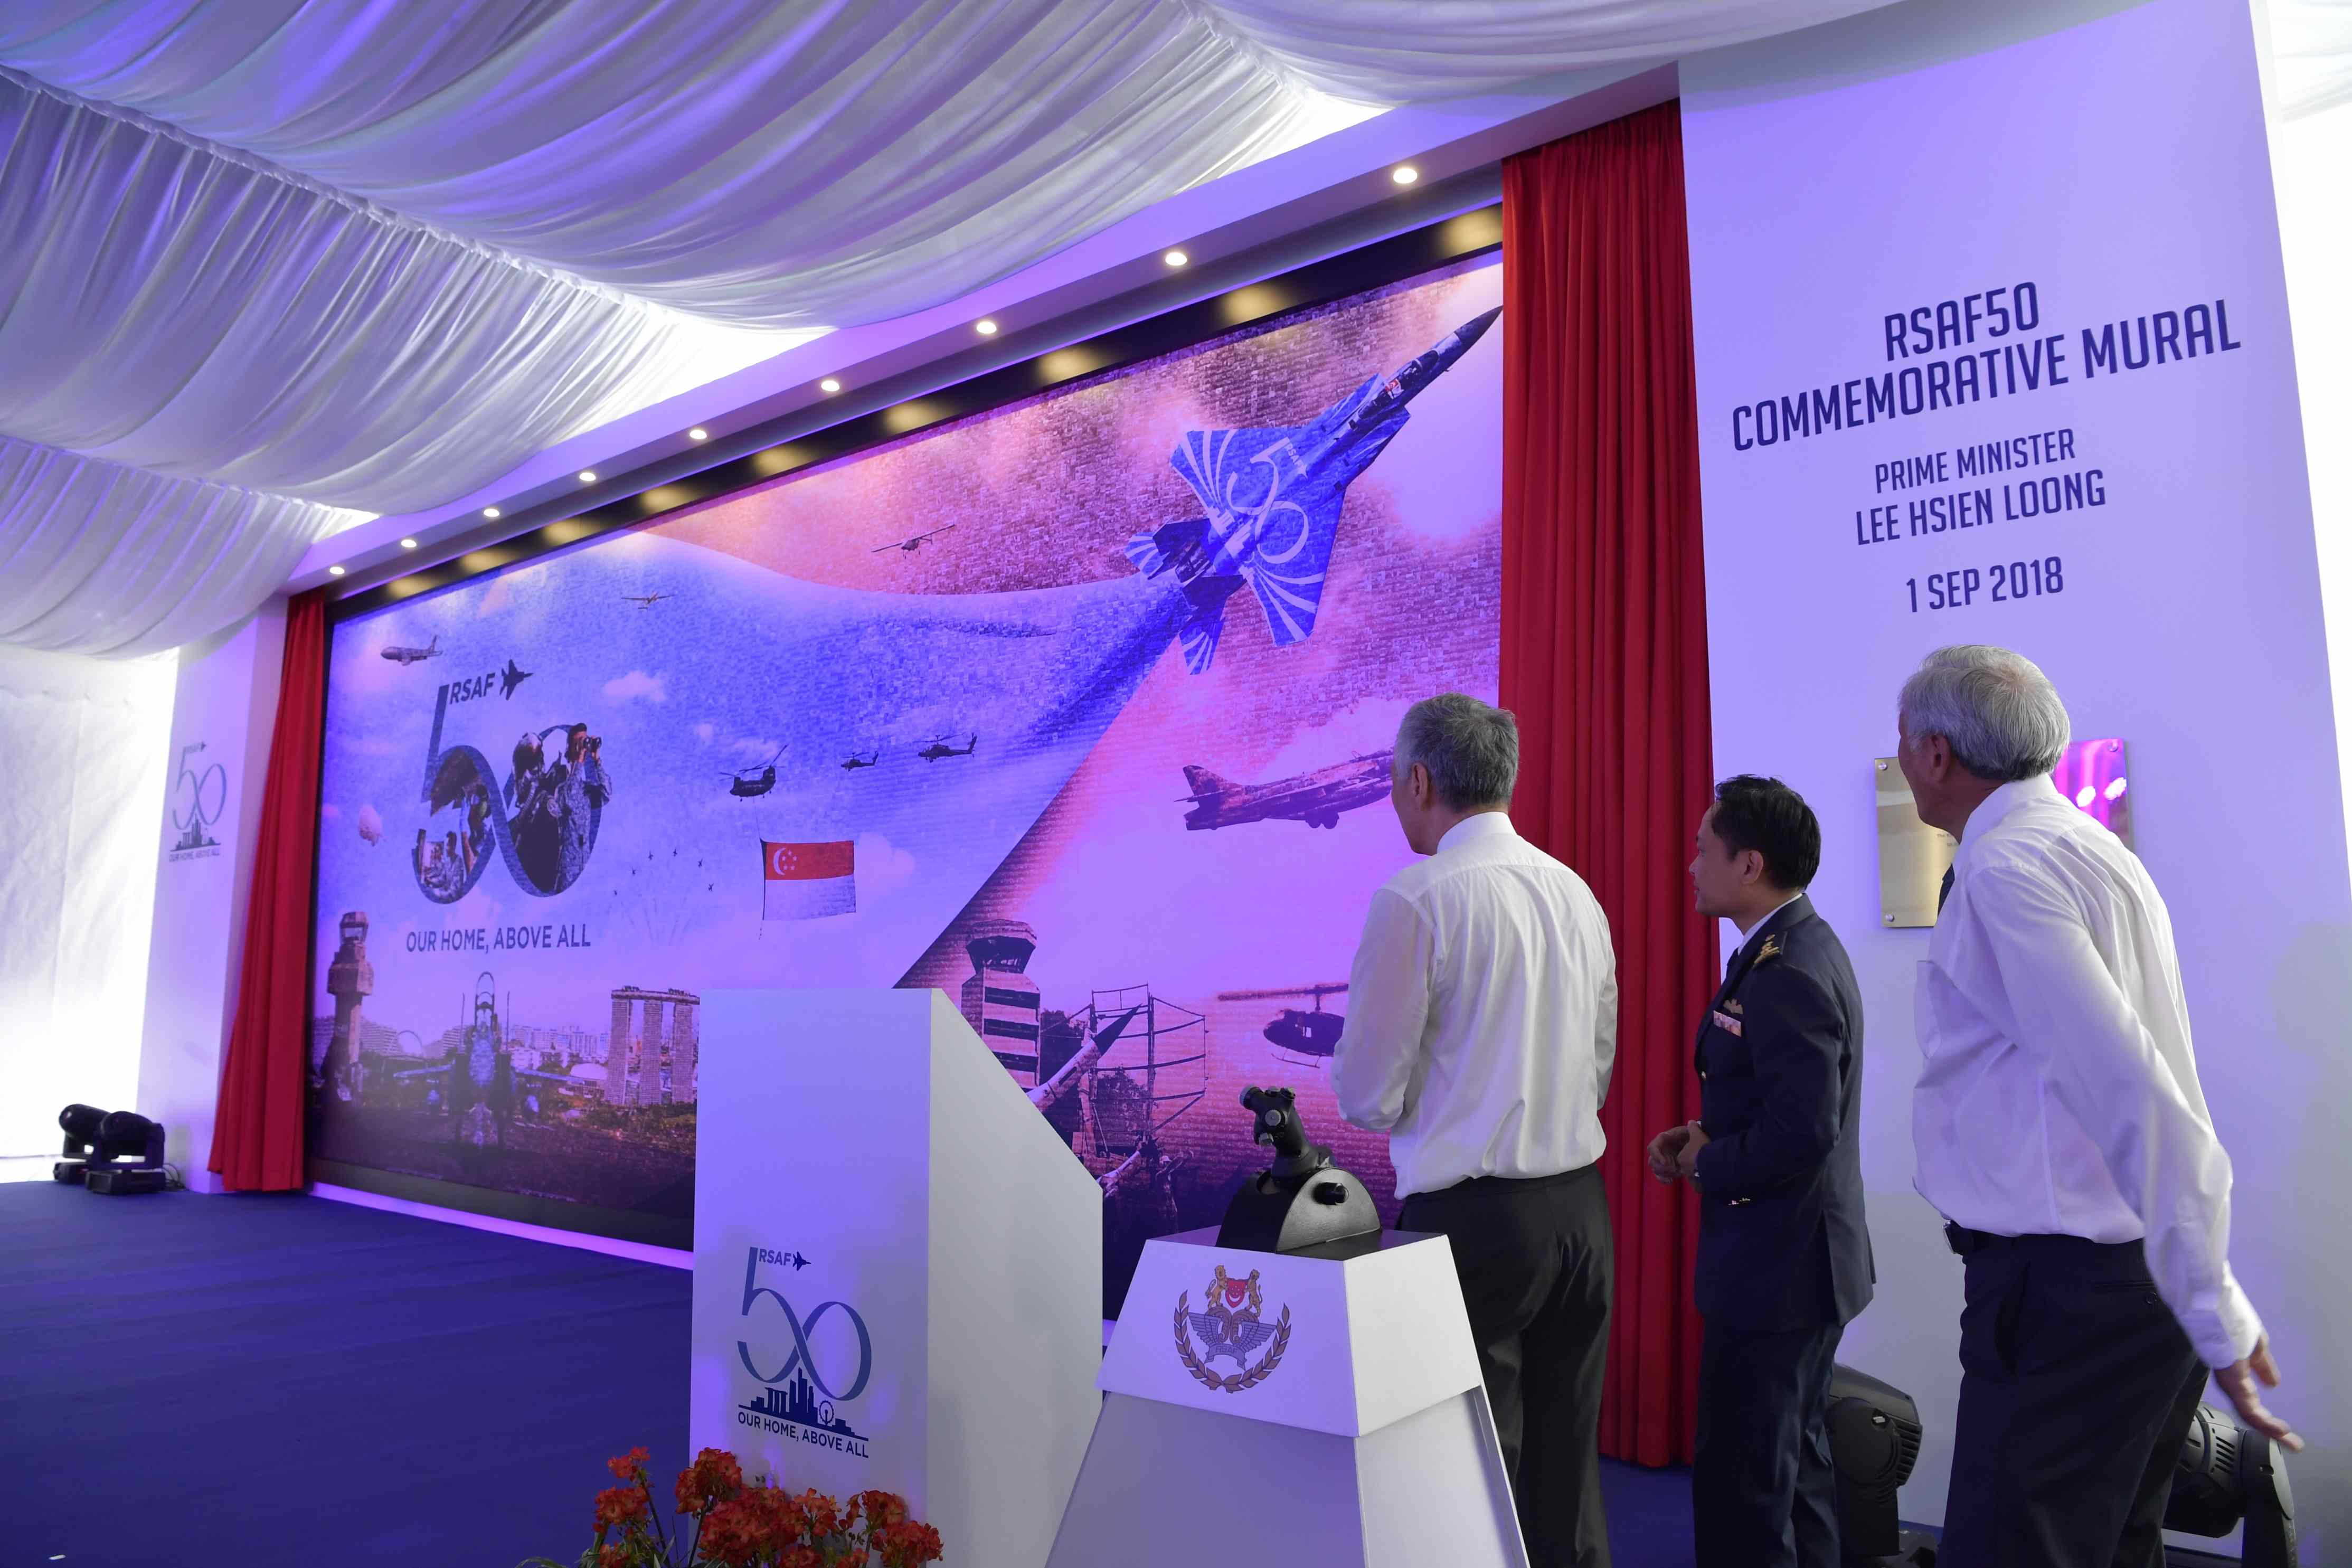 PM Lee (left), Chief of Air Force Major-General Mervyn Tan (centre), and Minister for Defence Dr Ng Eng Hen (right) unveiling the RSAF50 Commemorative Mural.